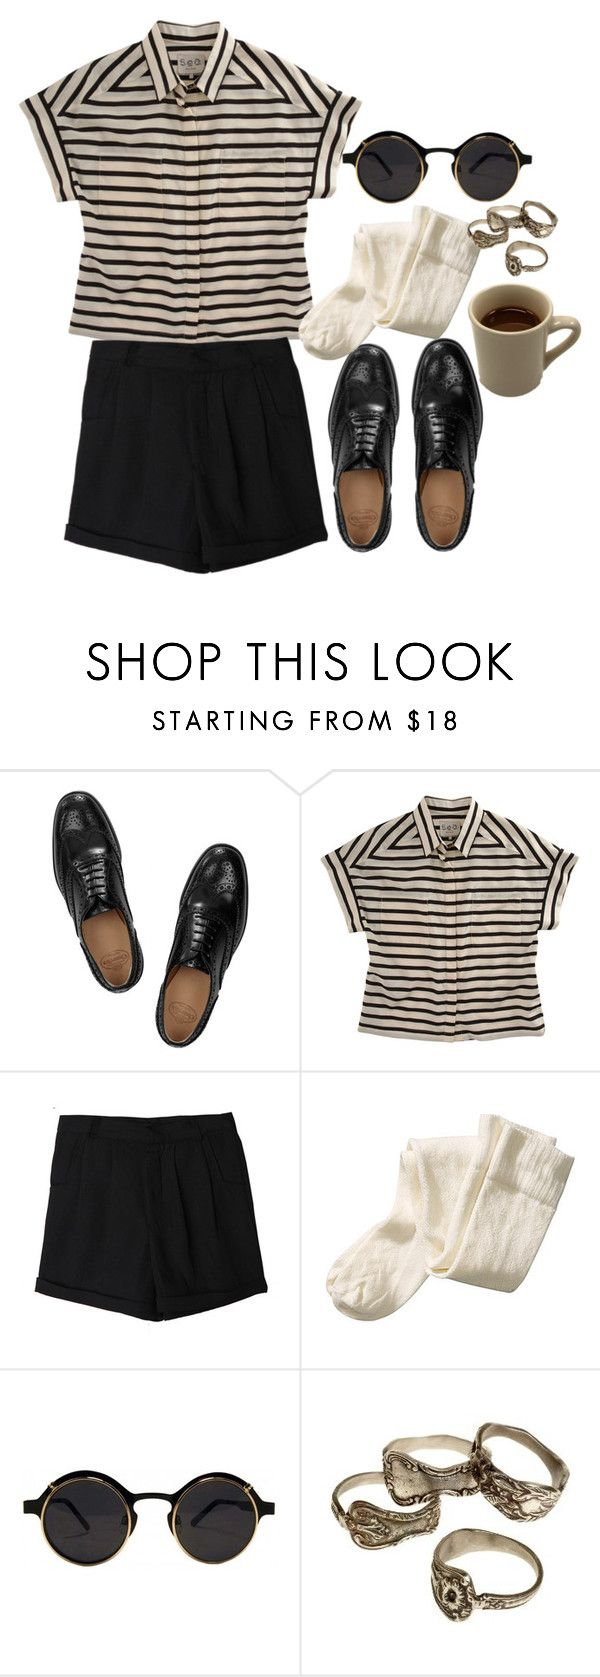 """Untitled #247"" by marta-andrade ❤ liked on Polyvore featuring Church's, Sea, New York and H&M"